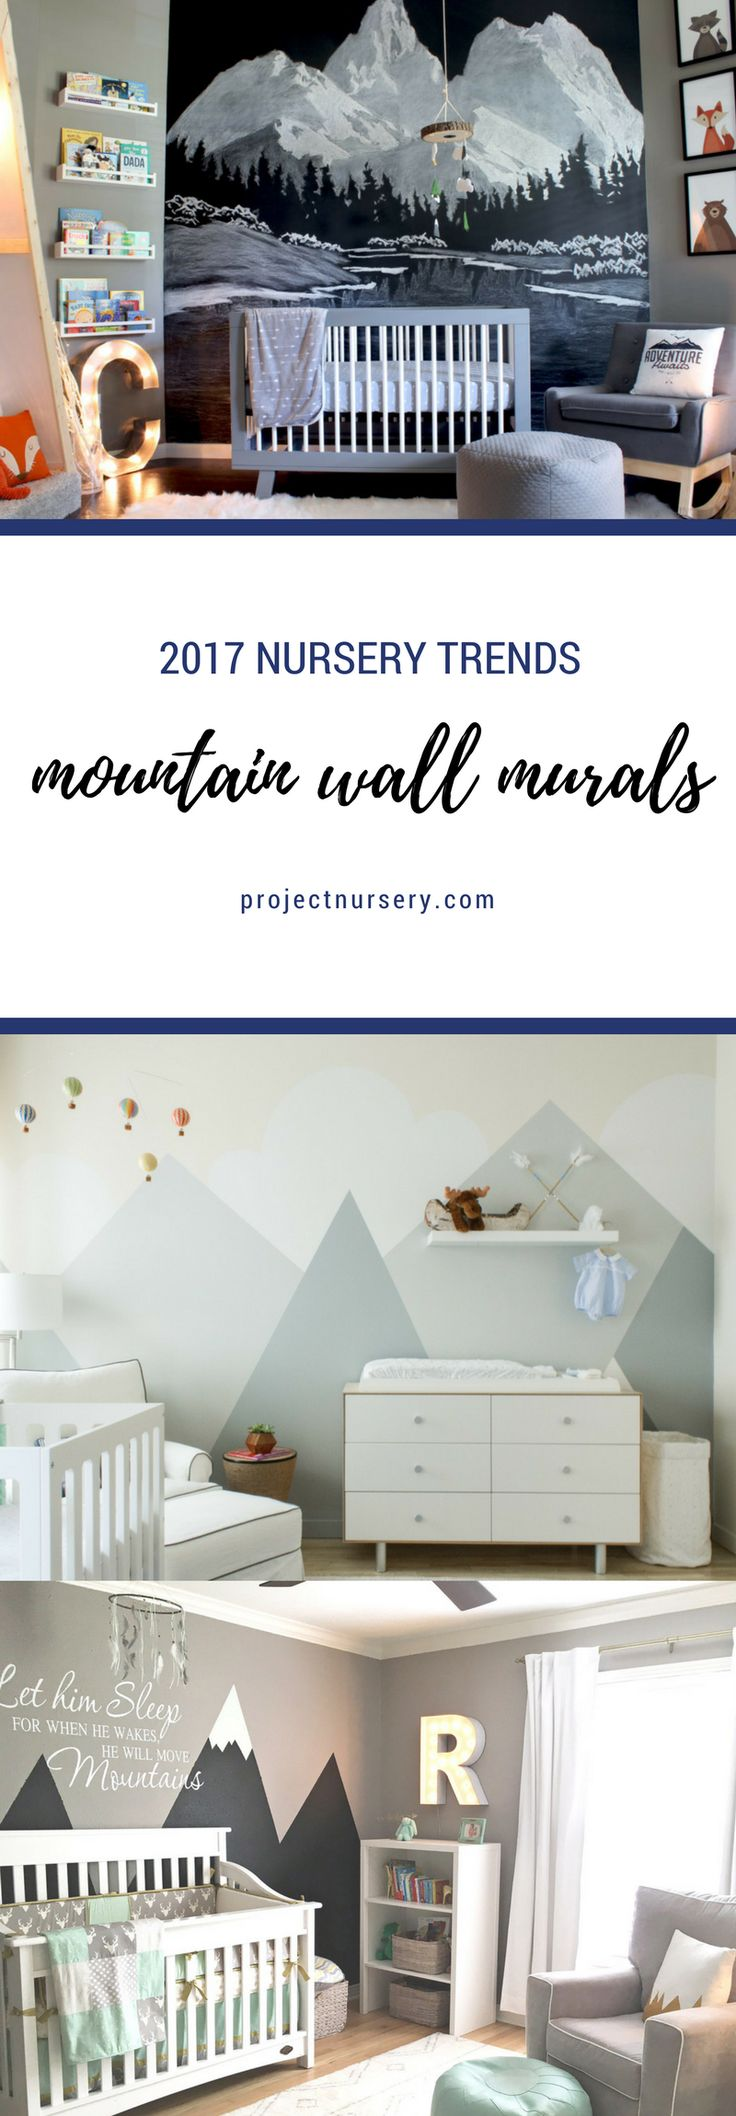 2017 Nursery Trends: MOUNTAIN WALL DECOR. Outdoors and adventure themed children's spaces remain top trends, especially for gender neutral nurseries. But this year, those striking mountain peaks will become the big kahuna.